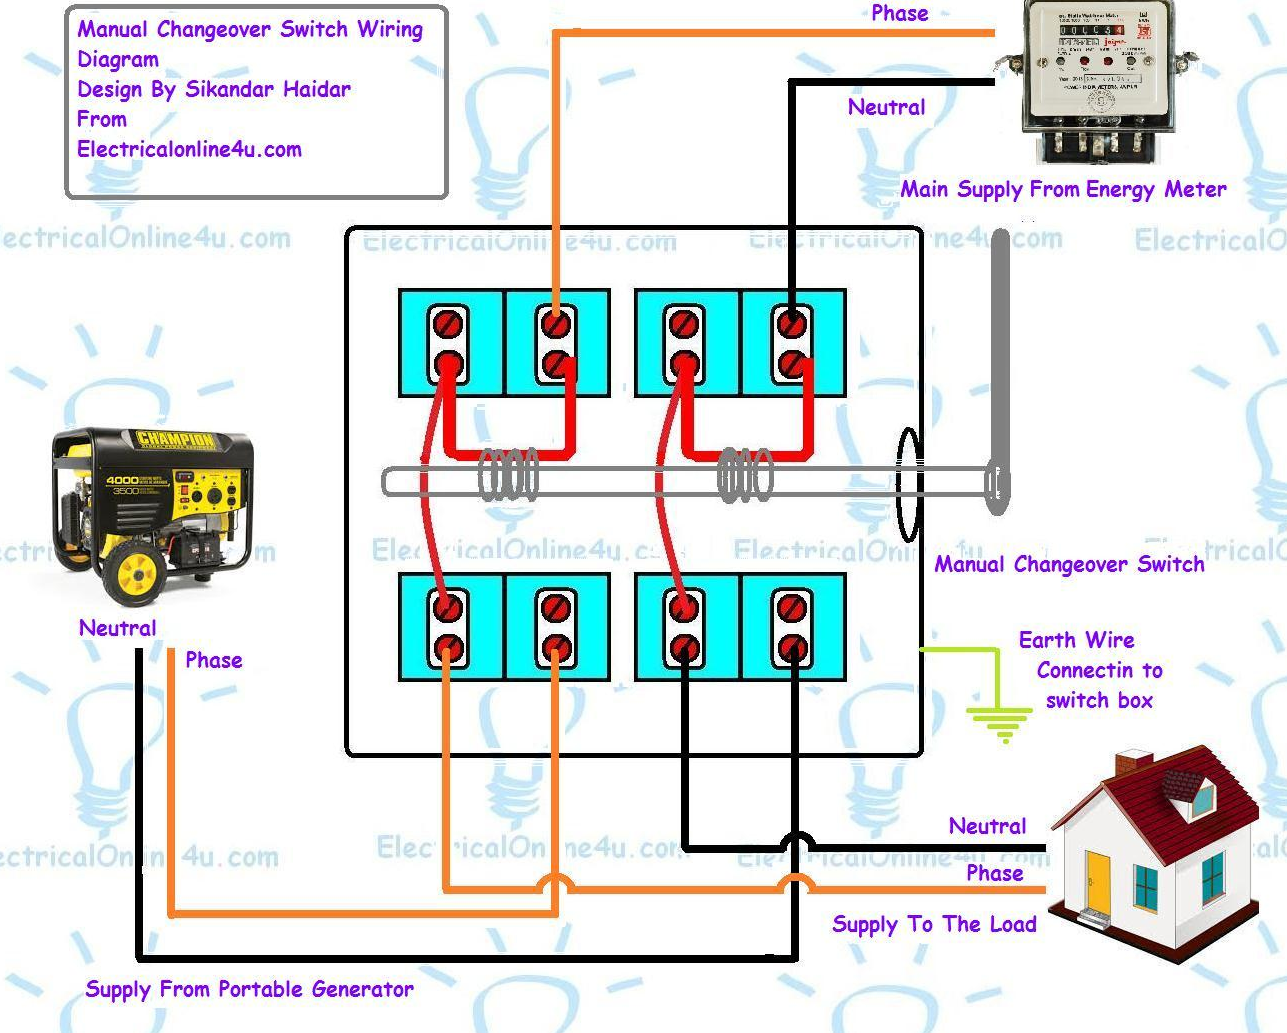 manual%2Bchangeover%2Bswitch%2Bwiring%2Bdiagram manual changeover switch wiring diagram for portable generator electrical switch wiring diagram at panicattacktreatment.co